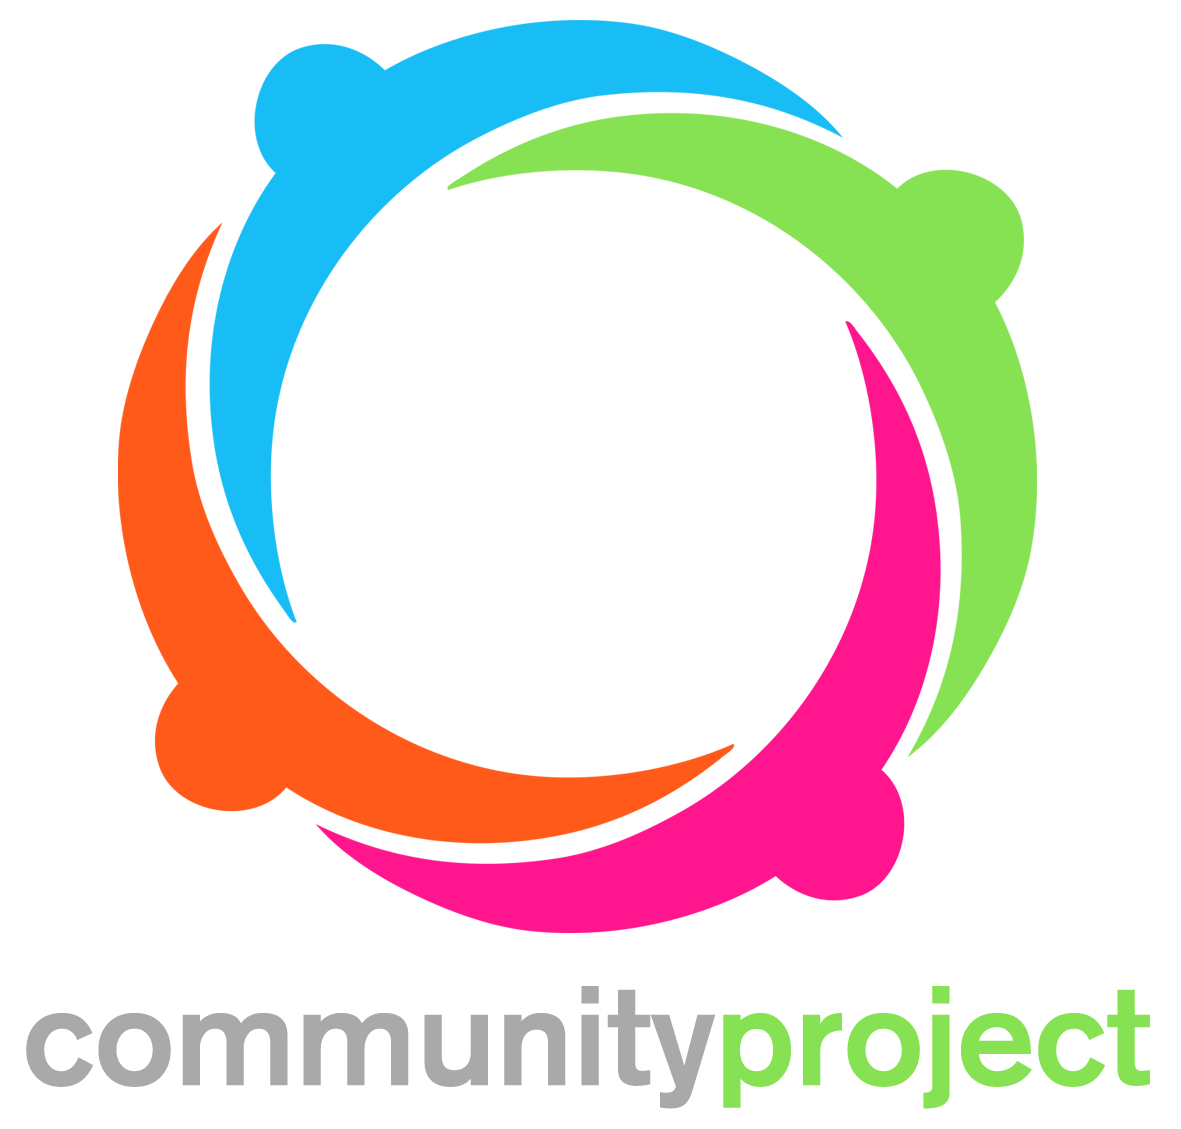 Volunteering clipart community project. Sign up to our